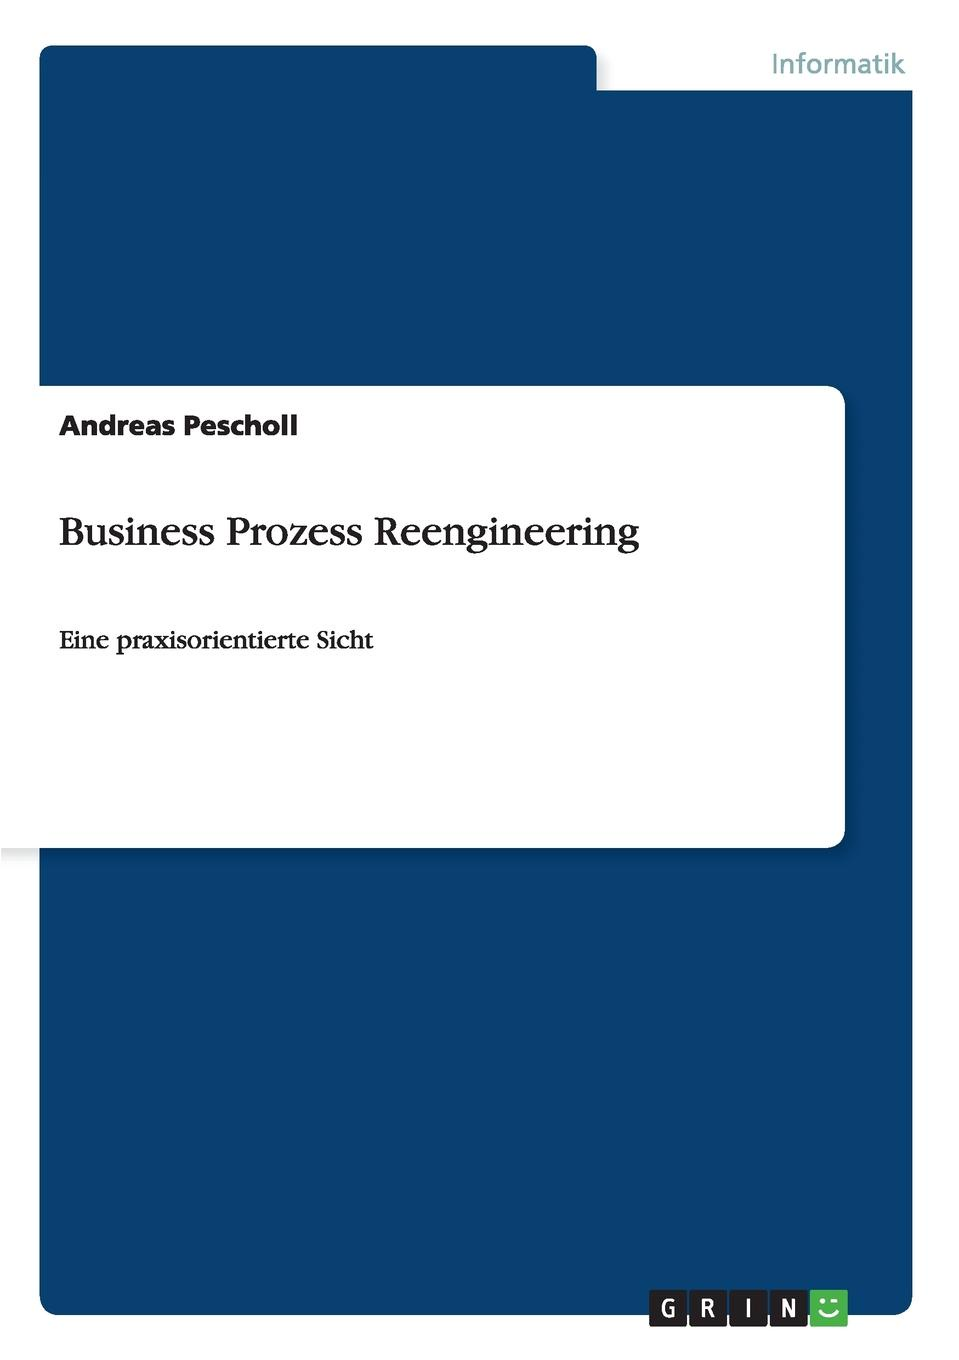 цена Andreas Pescholl Business Prozess Reengineering онлайн в 2017 году